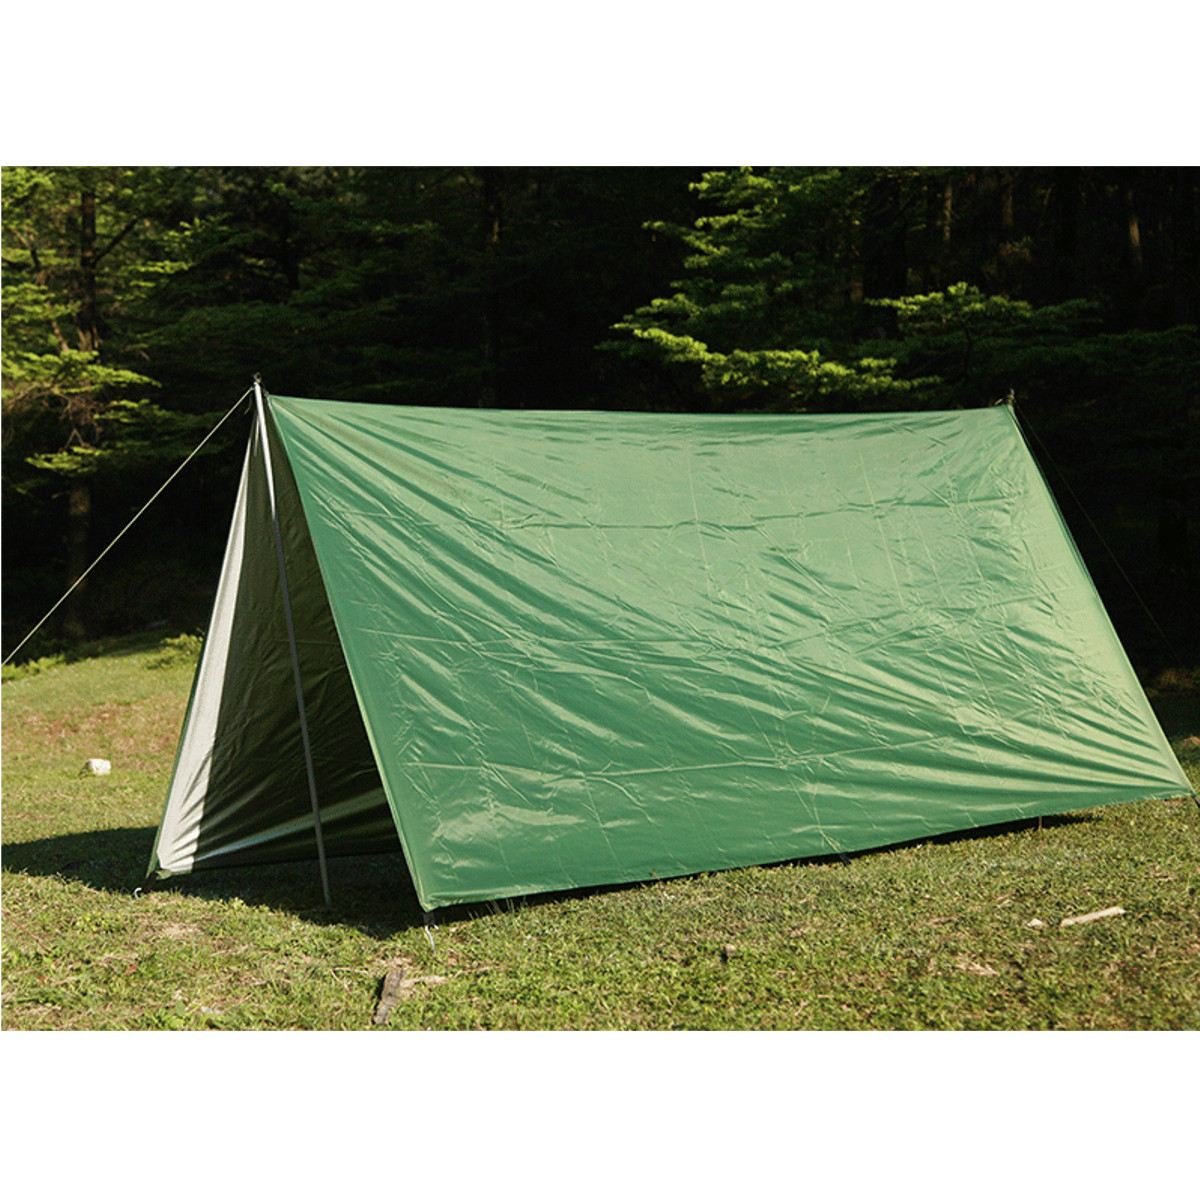 3mx3m Waterproof Sun Shelter Tarp Survival Camping Climbing Outdoor Tent  Patio Sun Shade Awning Canopy Garden Tent Shade In Sun Shelter From Sports  ...